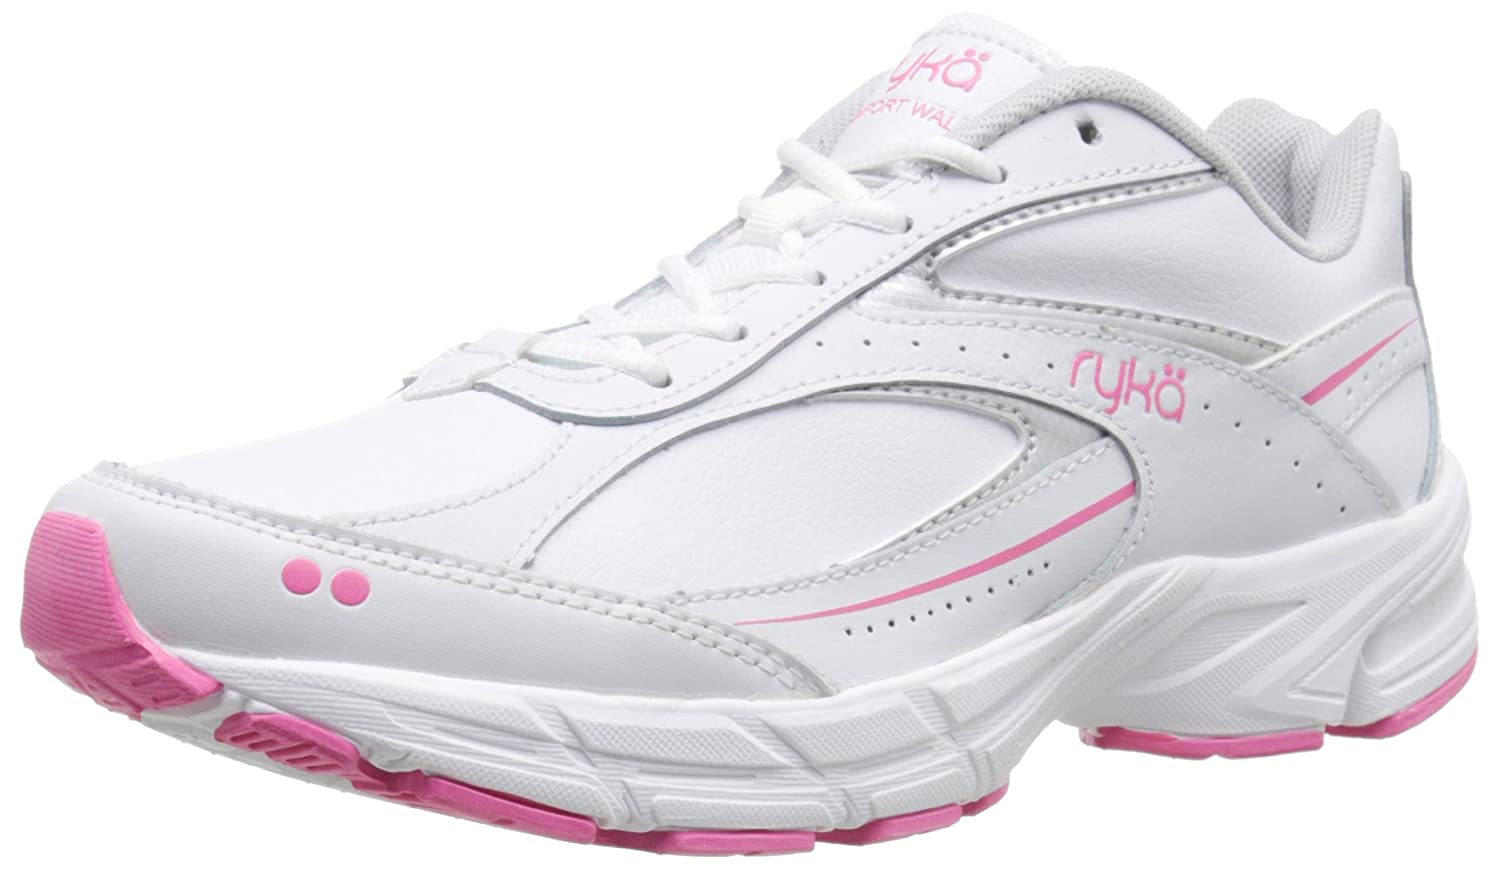 Ryka Women's Comfort Leather Walking Shoe Silver/Hot B014GNMCO8 6 W US|White/Chrome Silver/Hot Shoe Pink df3b78